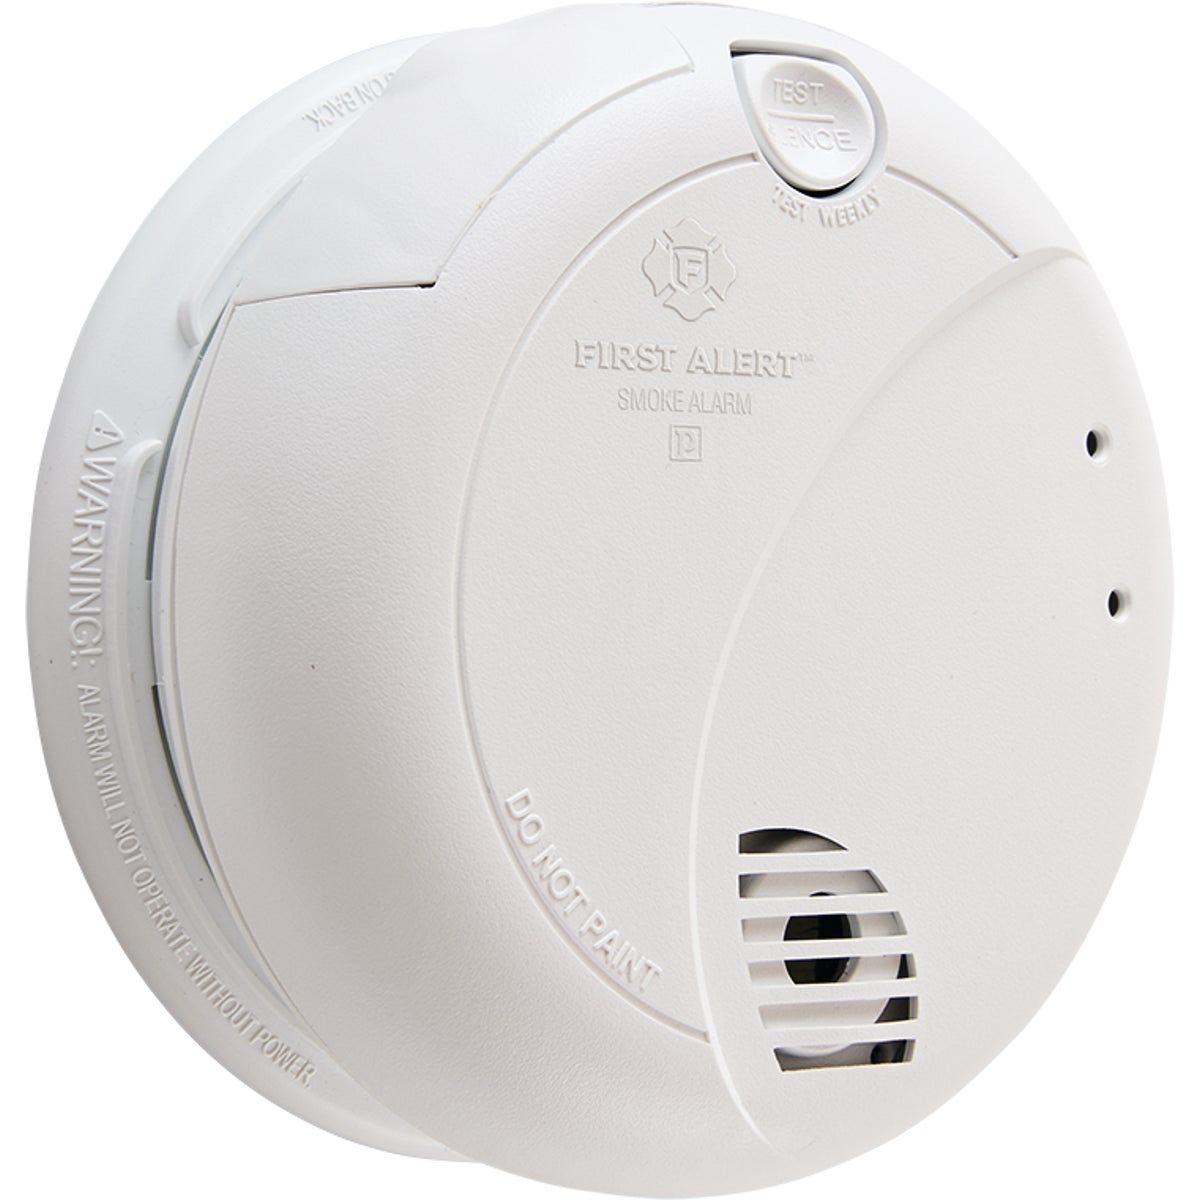 AC SMOKE ALARM W/BATTERY - 7010B by First Alert  Jarden